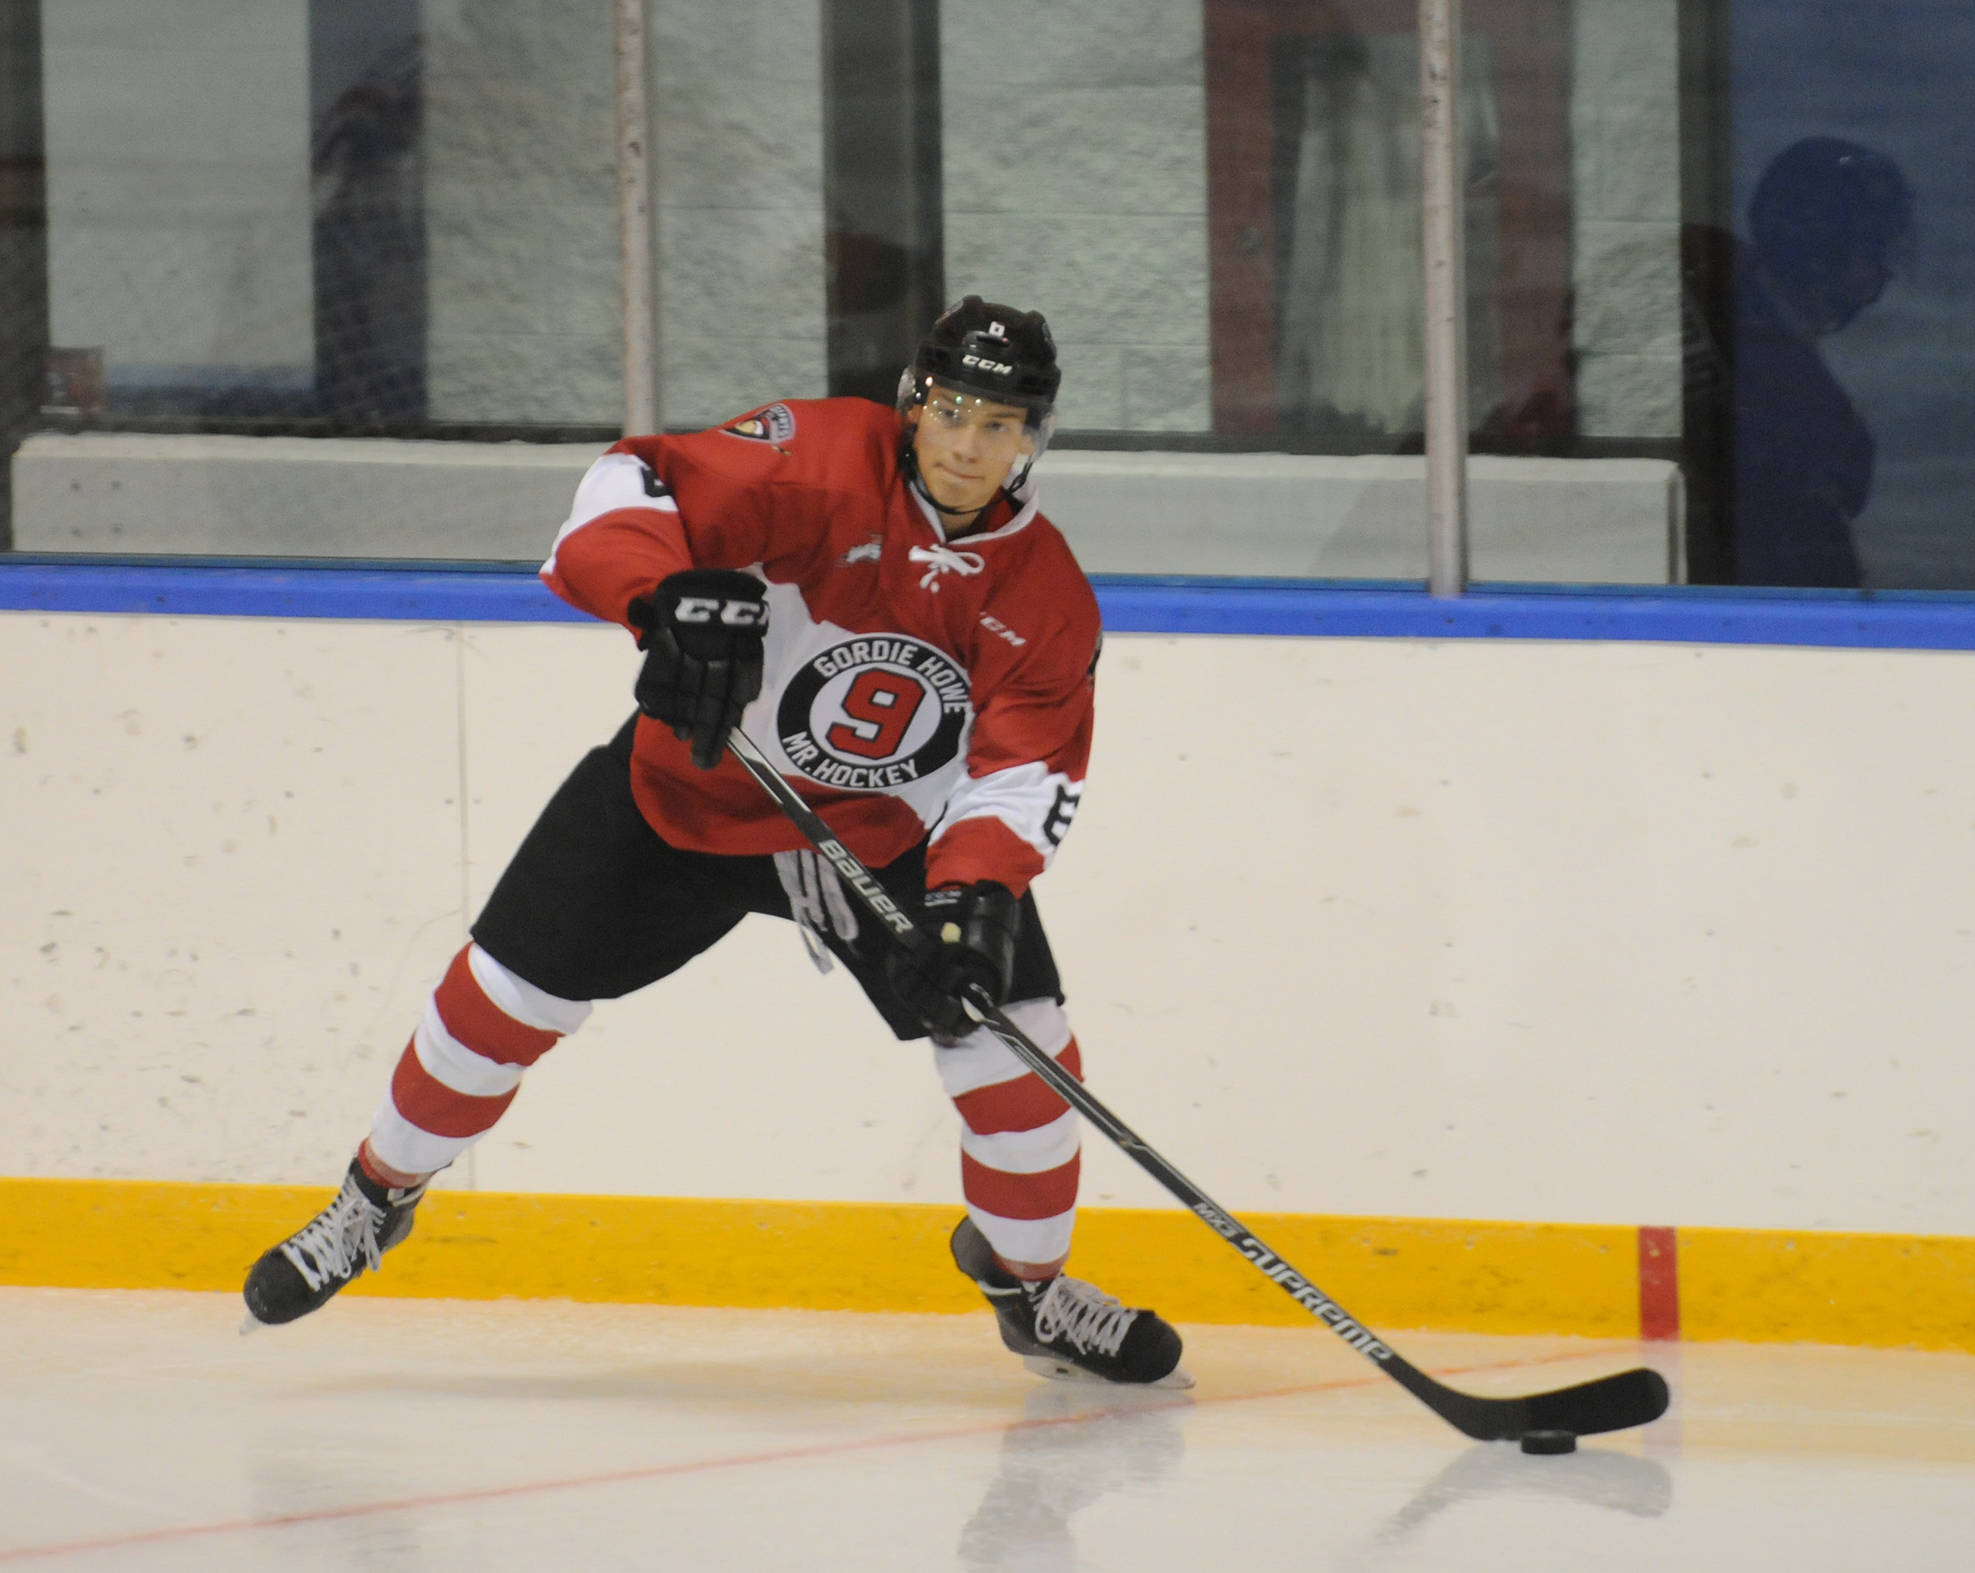 Dylan Plouffe is among the 58 players at Vancouver Giants training camp. Gary Ahuja Langley Times file photo